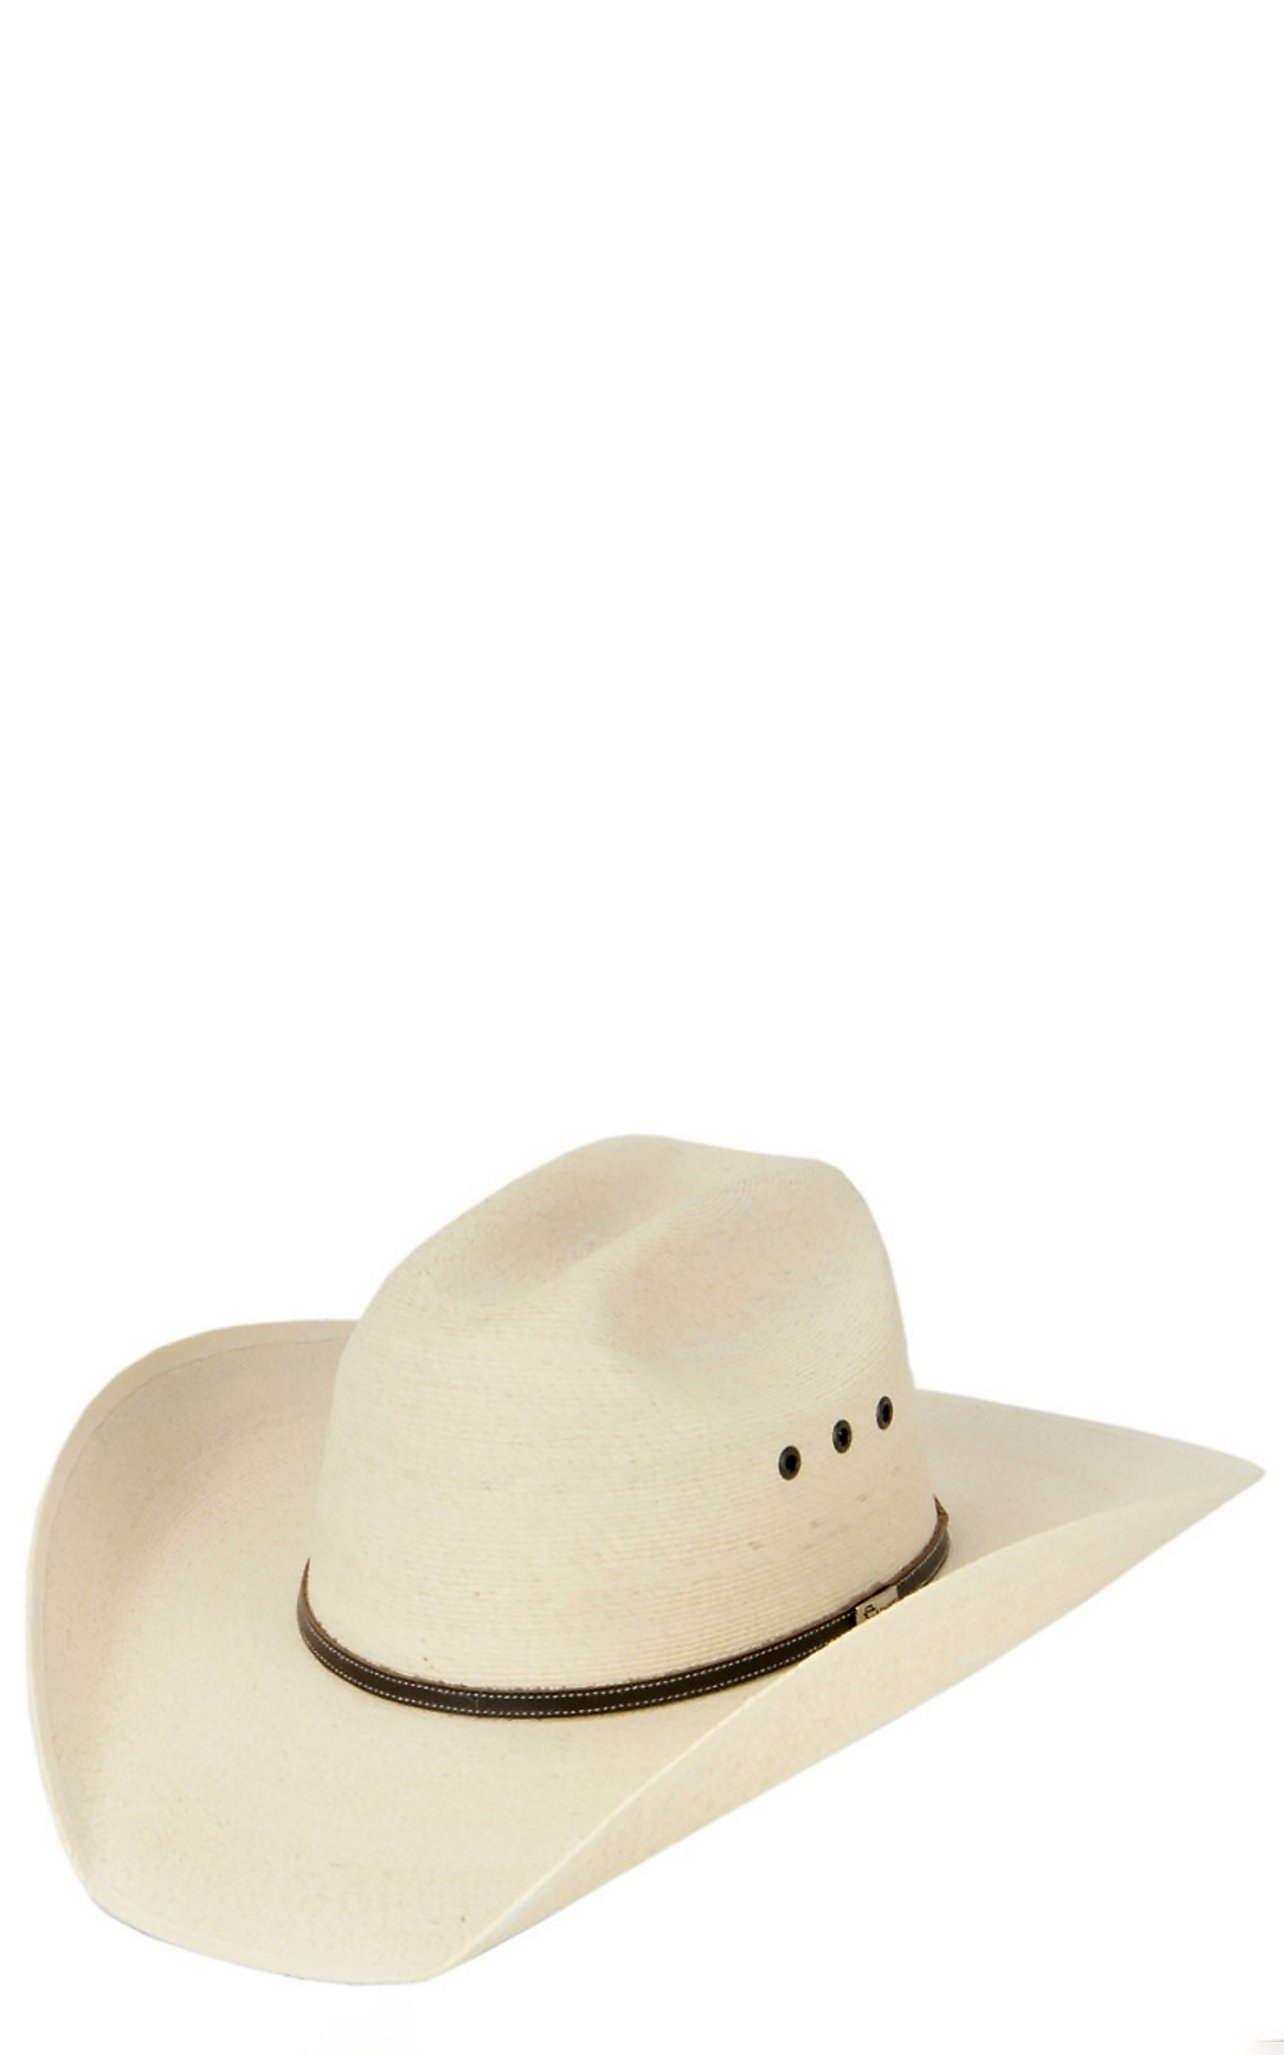 Atwood Hat  Atwood 7X Hereford Palm Leaf Low Crown Cowboy Hat 193dd0559dca